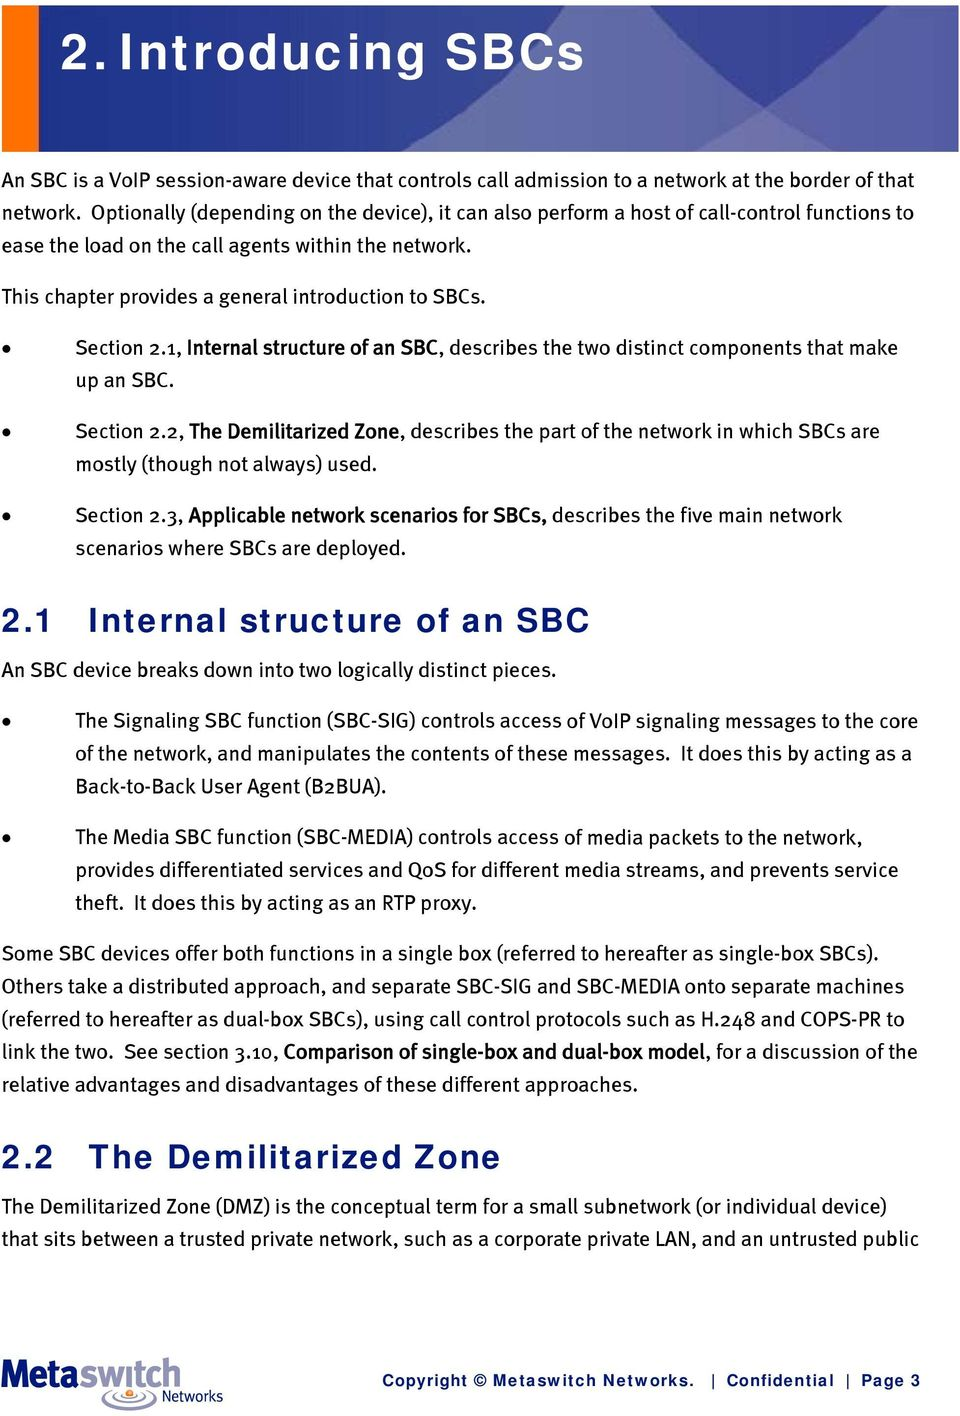 Section 2.1, Internal structure of an SBC, describes the two distinct components that make up an SBC. Section 2.